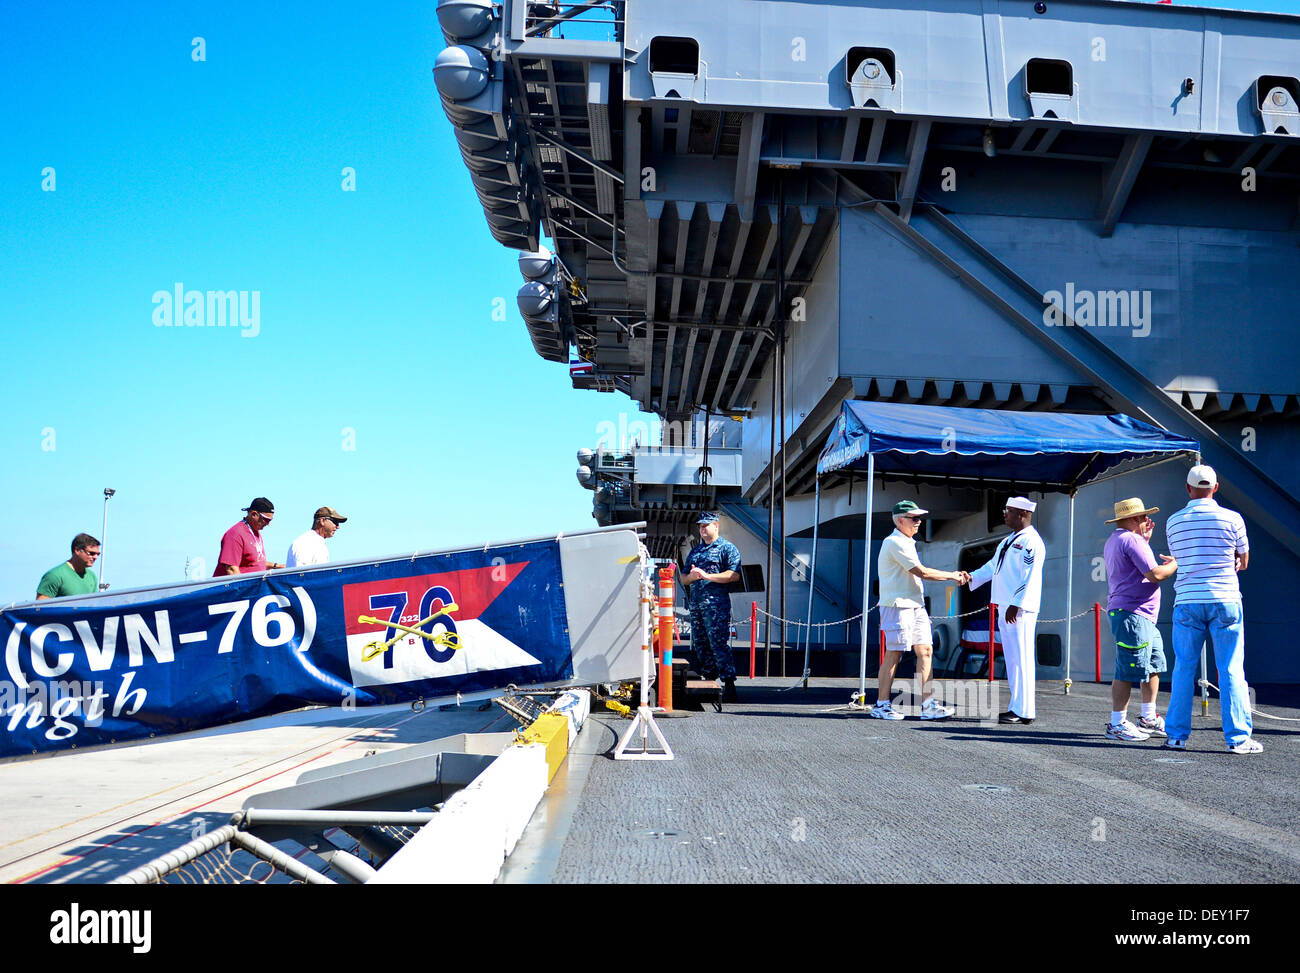 Guests walk aboard the aircraft carrier USS Ronald Reagan (CVN 76) for a tour. Ronald Reagan, 'America's Flagship,' is participating in the annual Coronado Speed Festival. This event was created in 1997, to honor the military while enjoying a rich automob - Stock Image